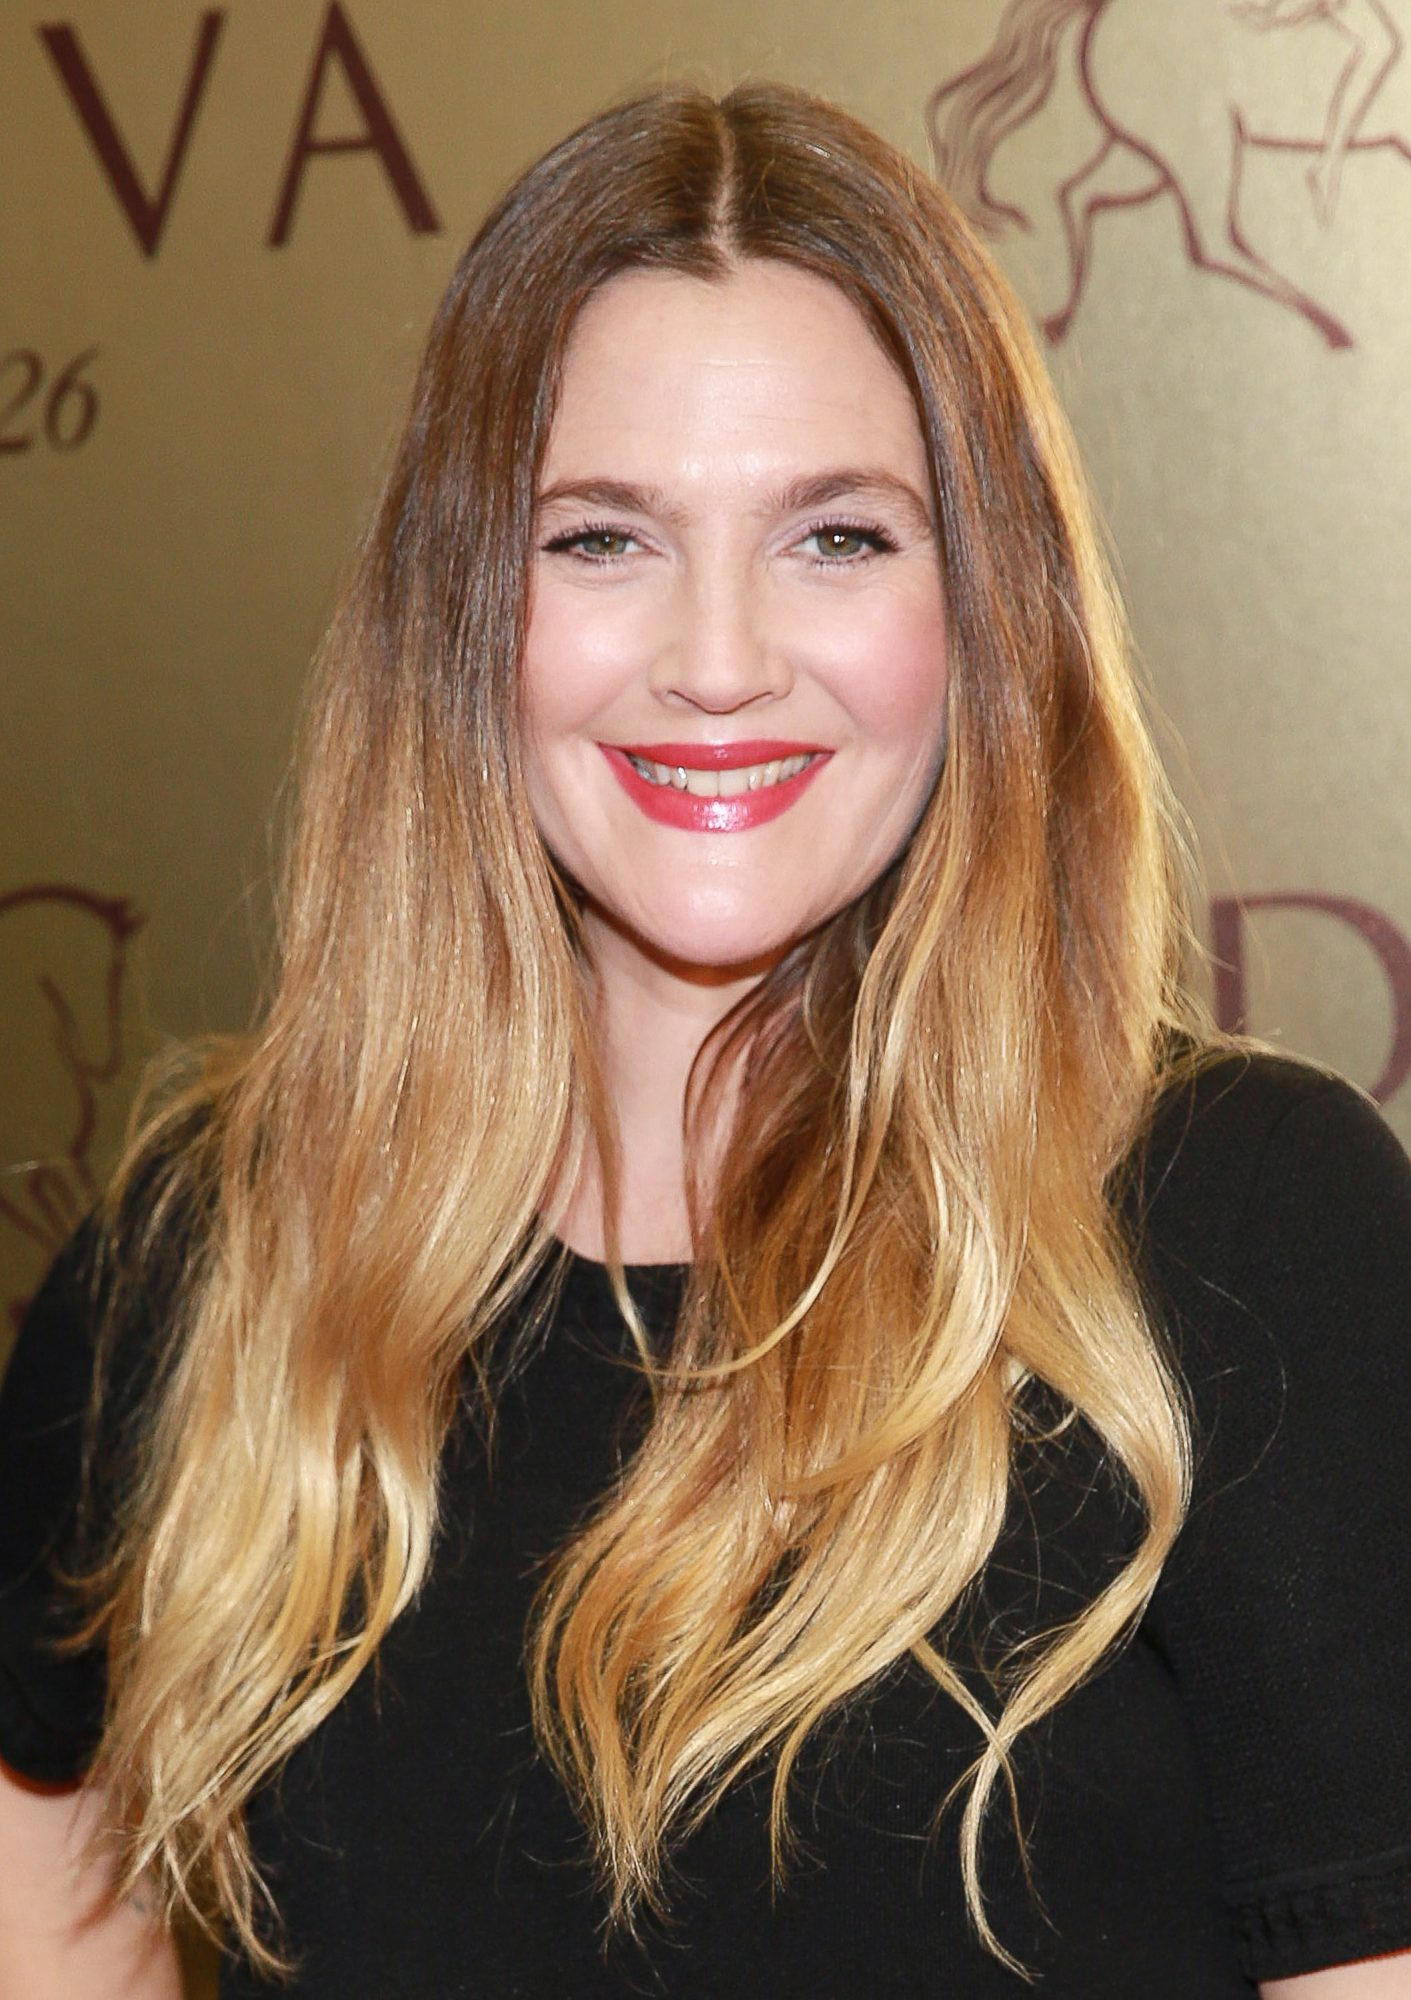 <p>Drew Barrymore - Teeth Whitening</p>